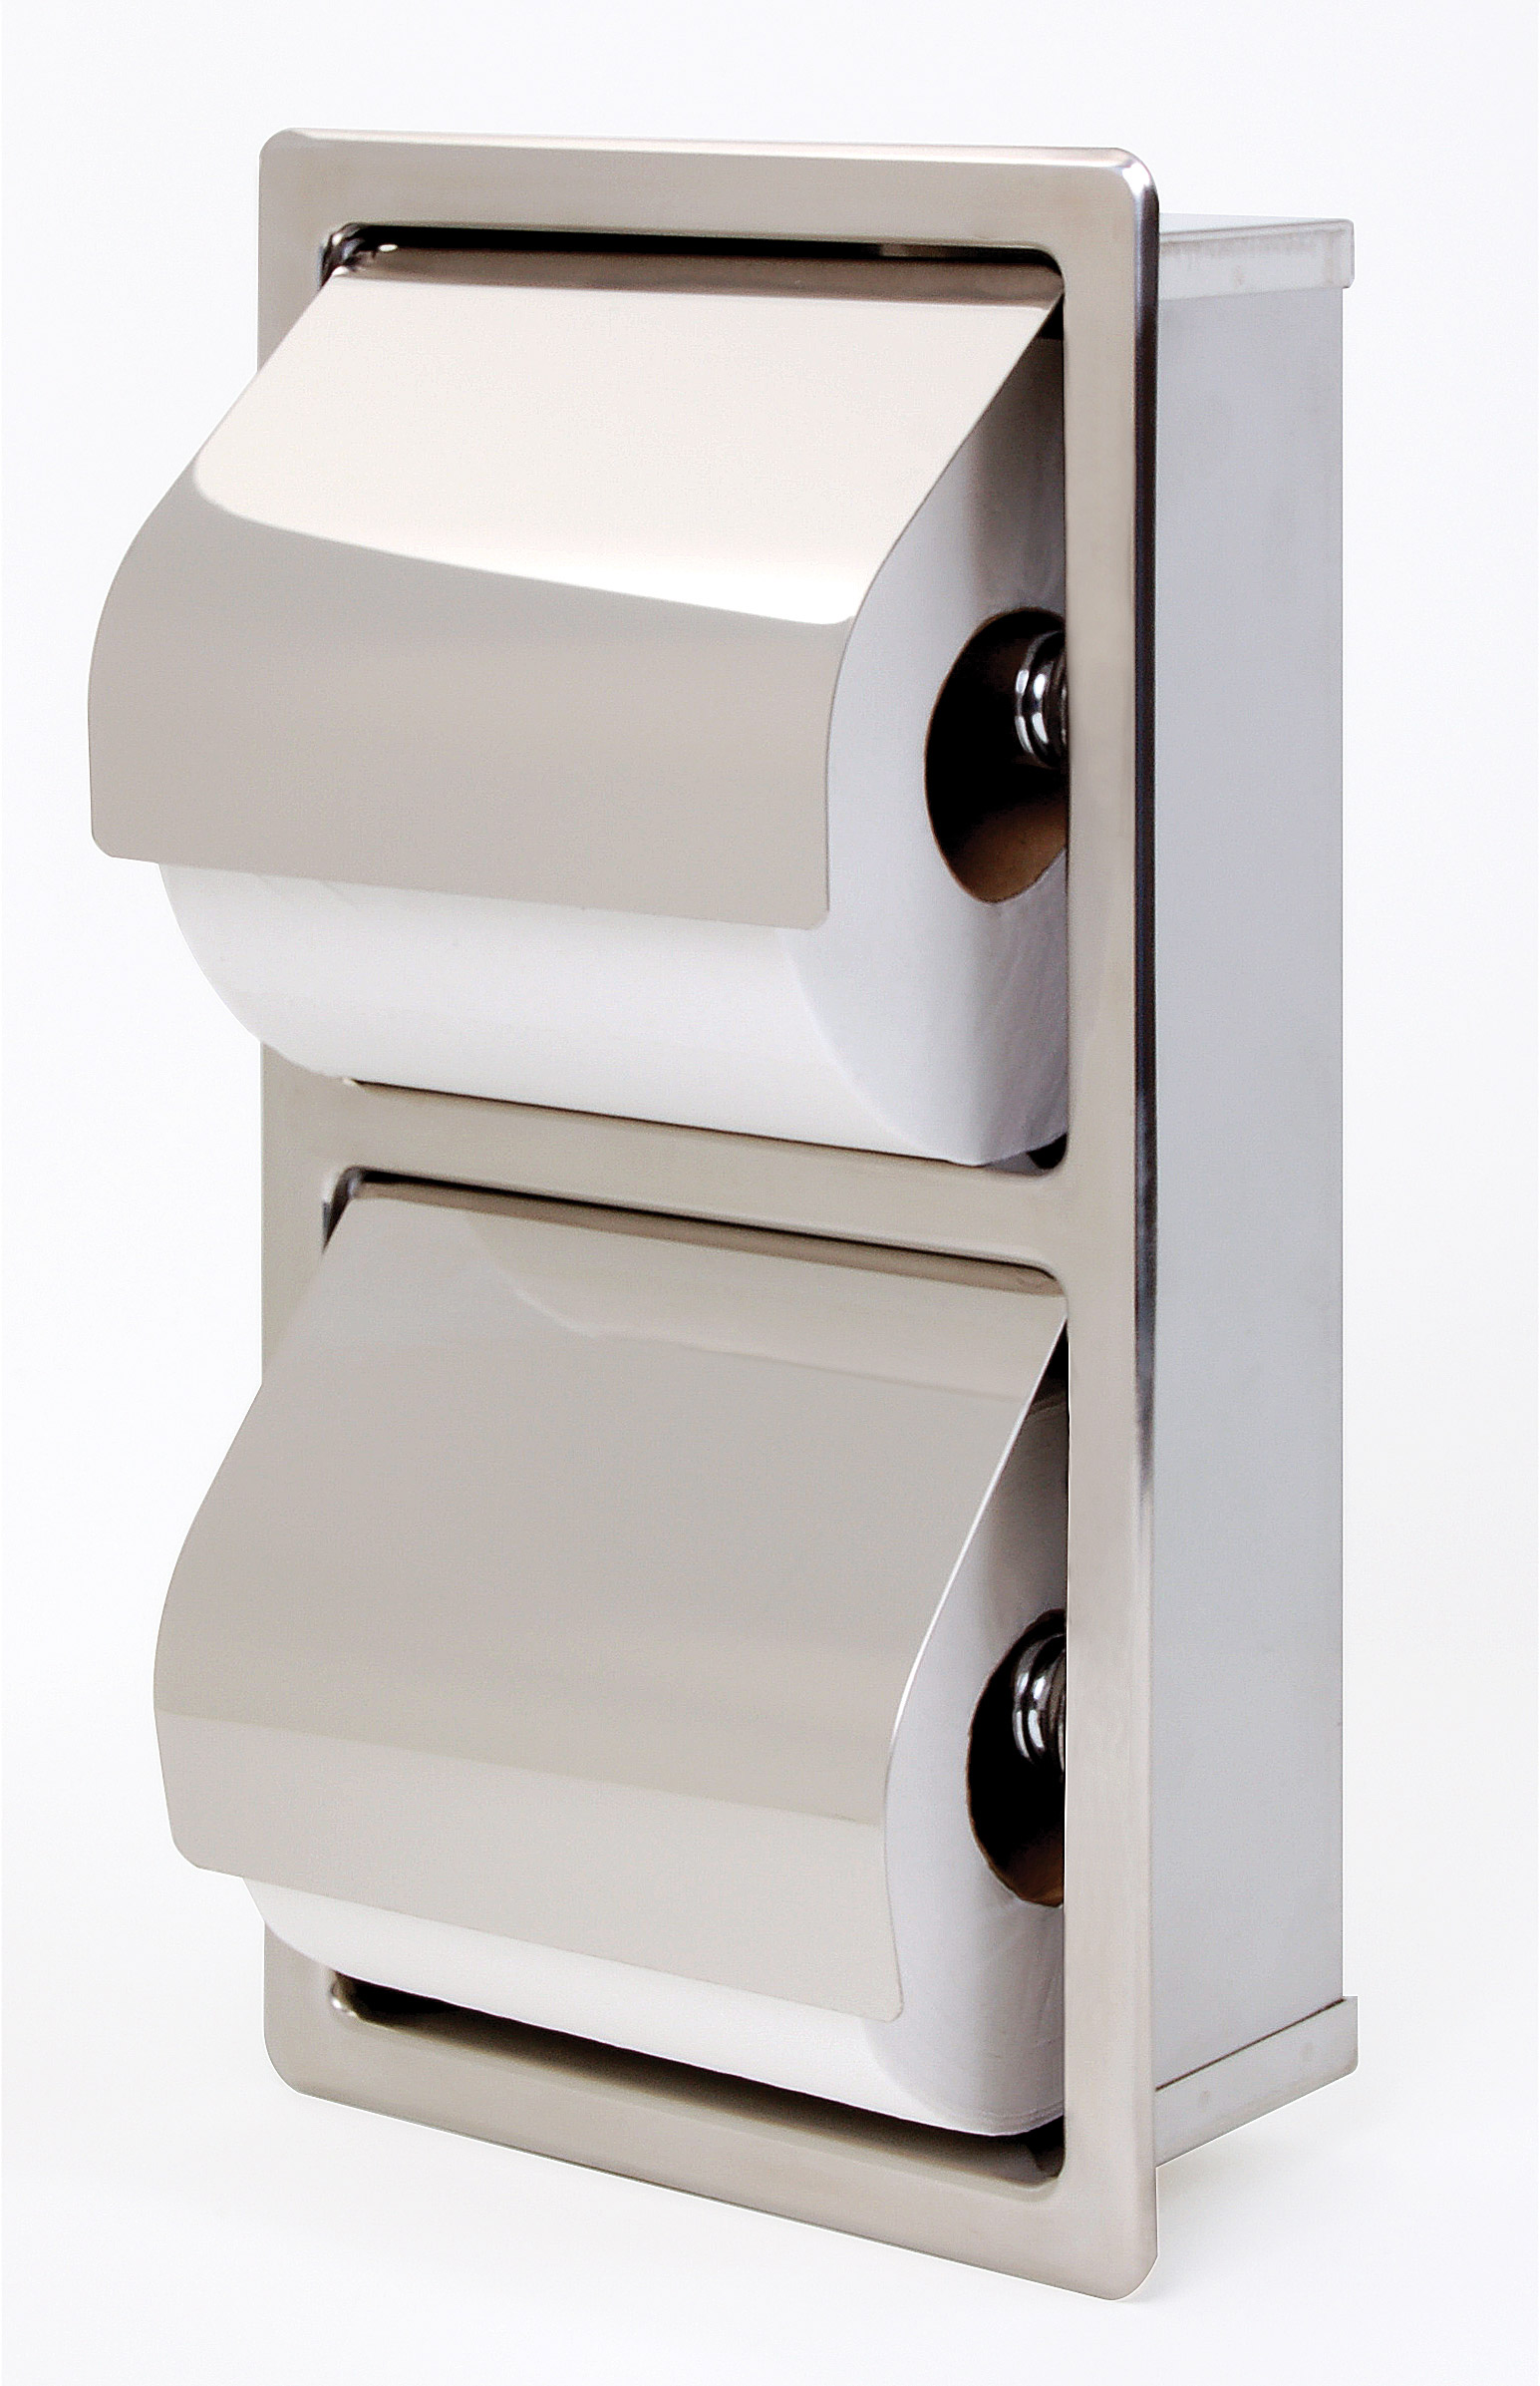 Tp Dispenser Recessed Hinged Hood Stacking Rolls Toilet Tissue